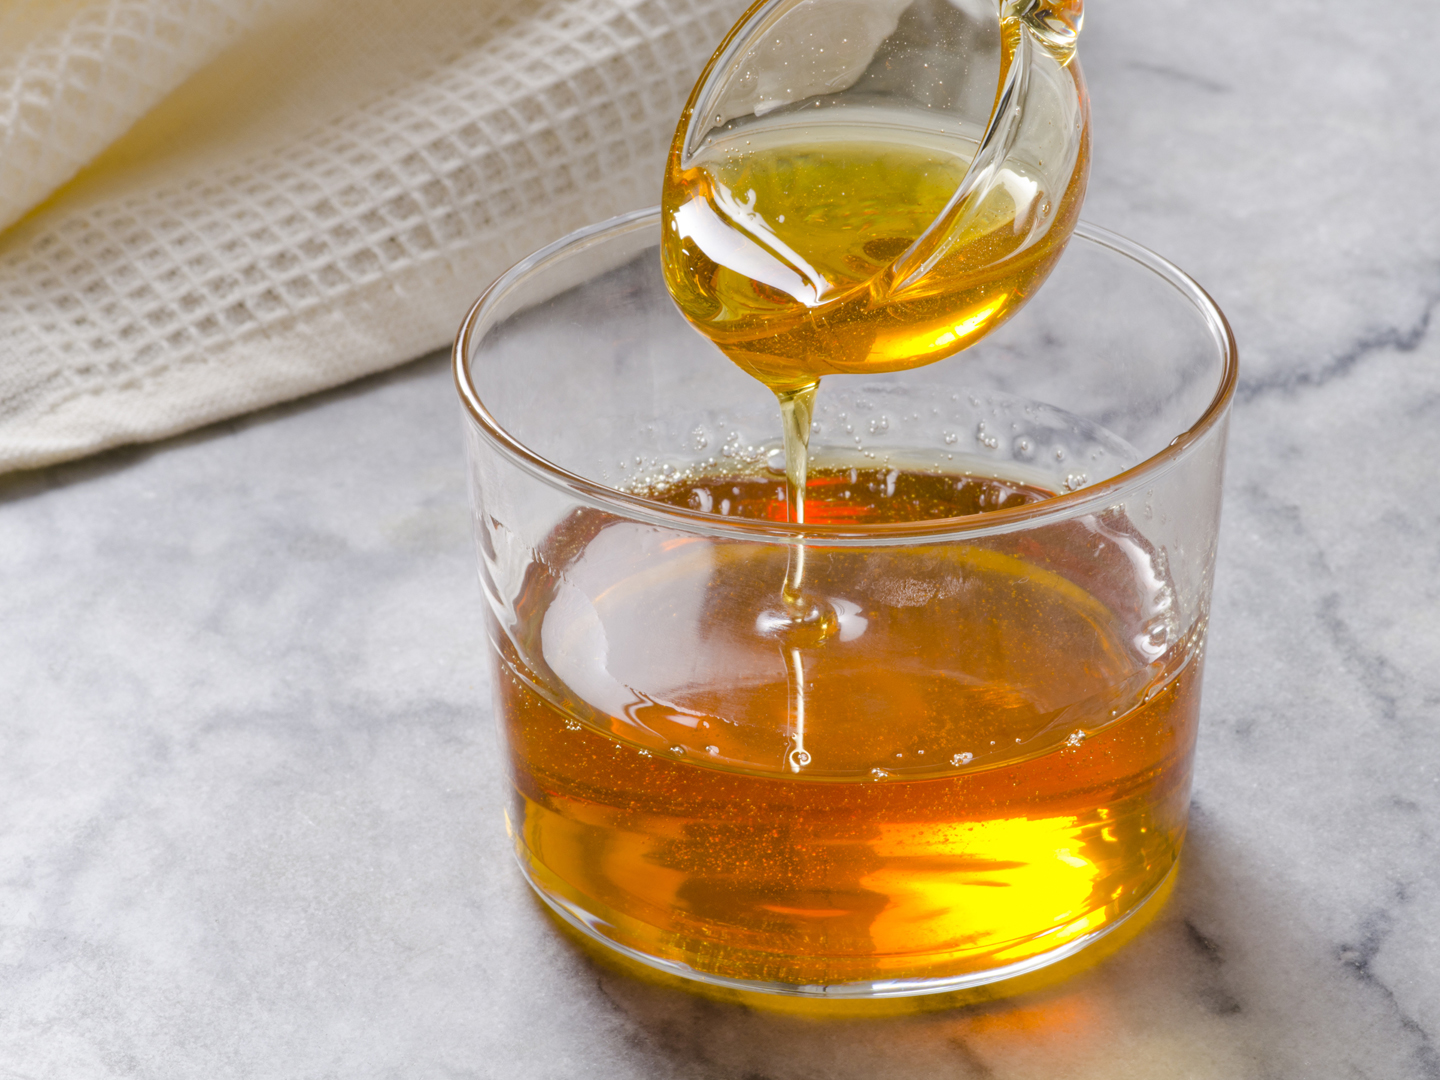 Agave Nectar vs Sugar – Which is Worse?